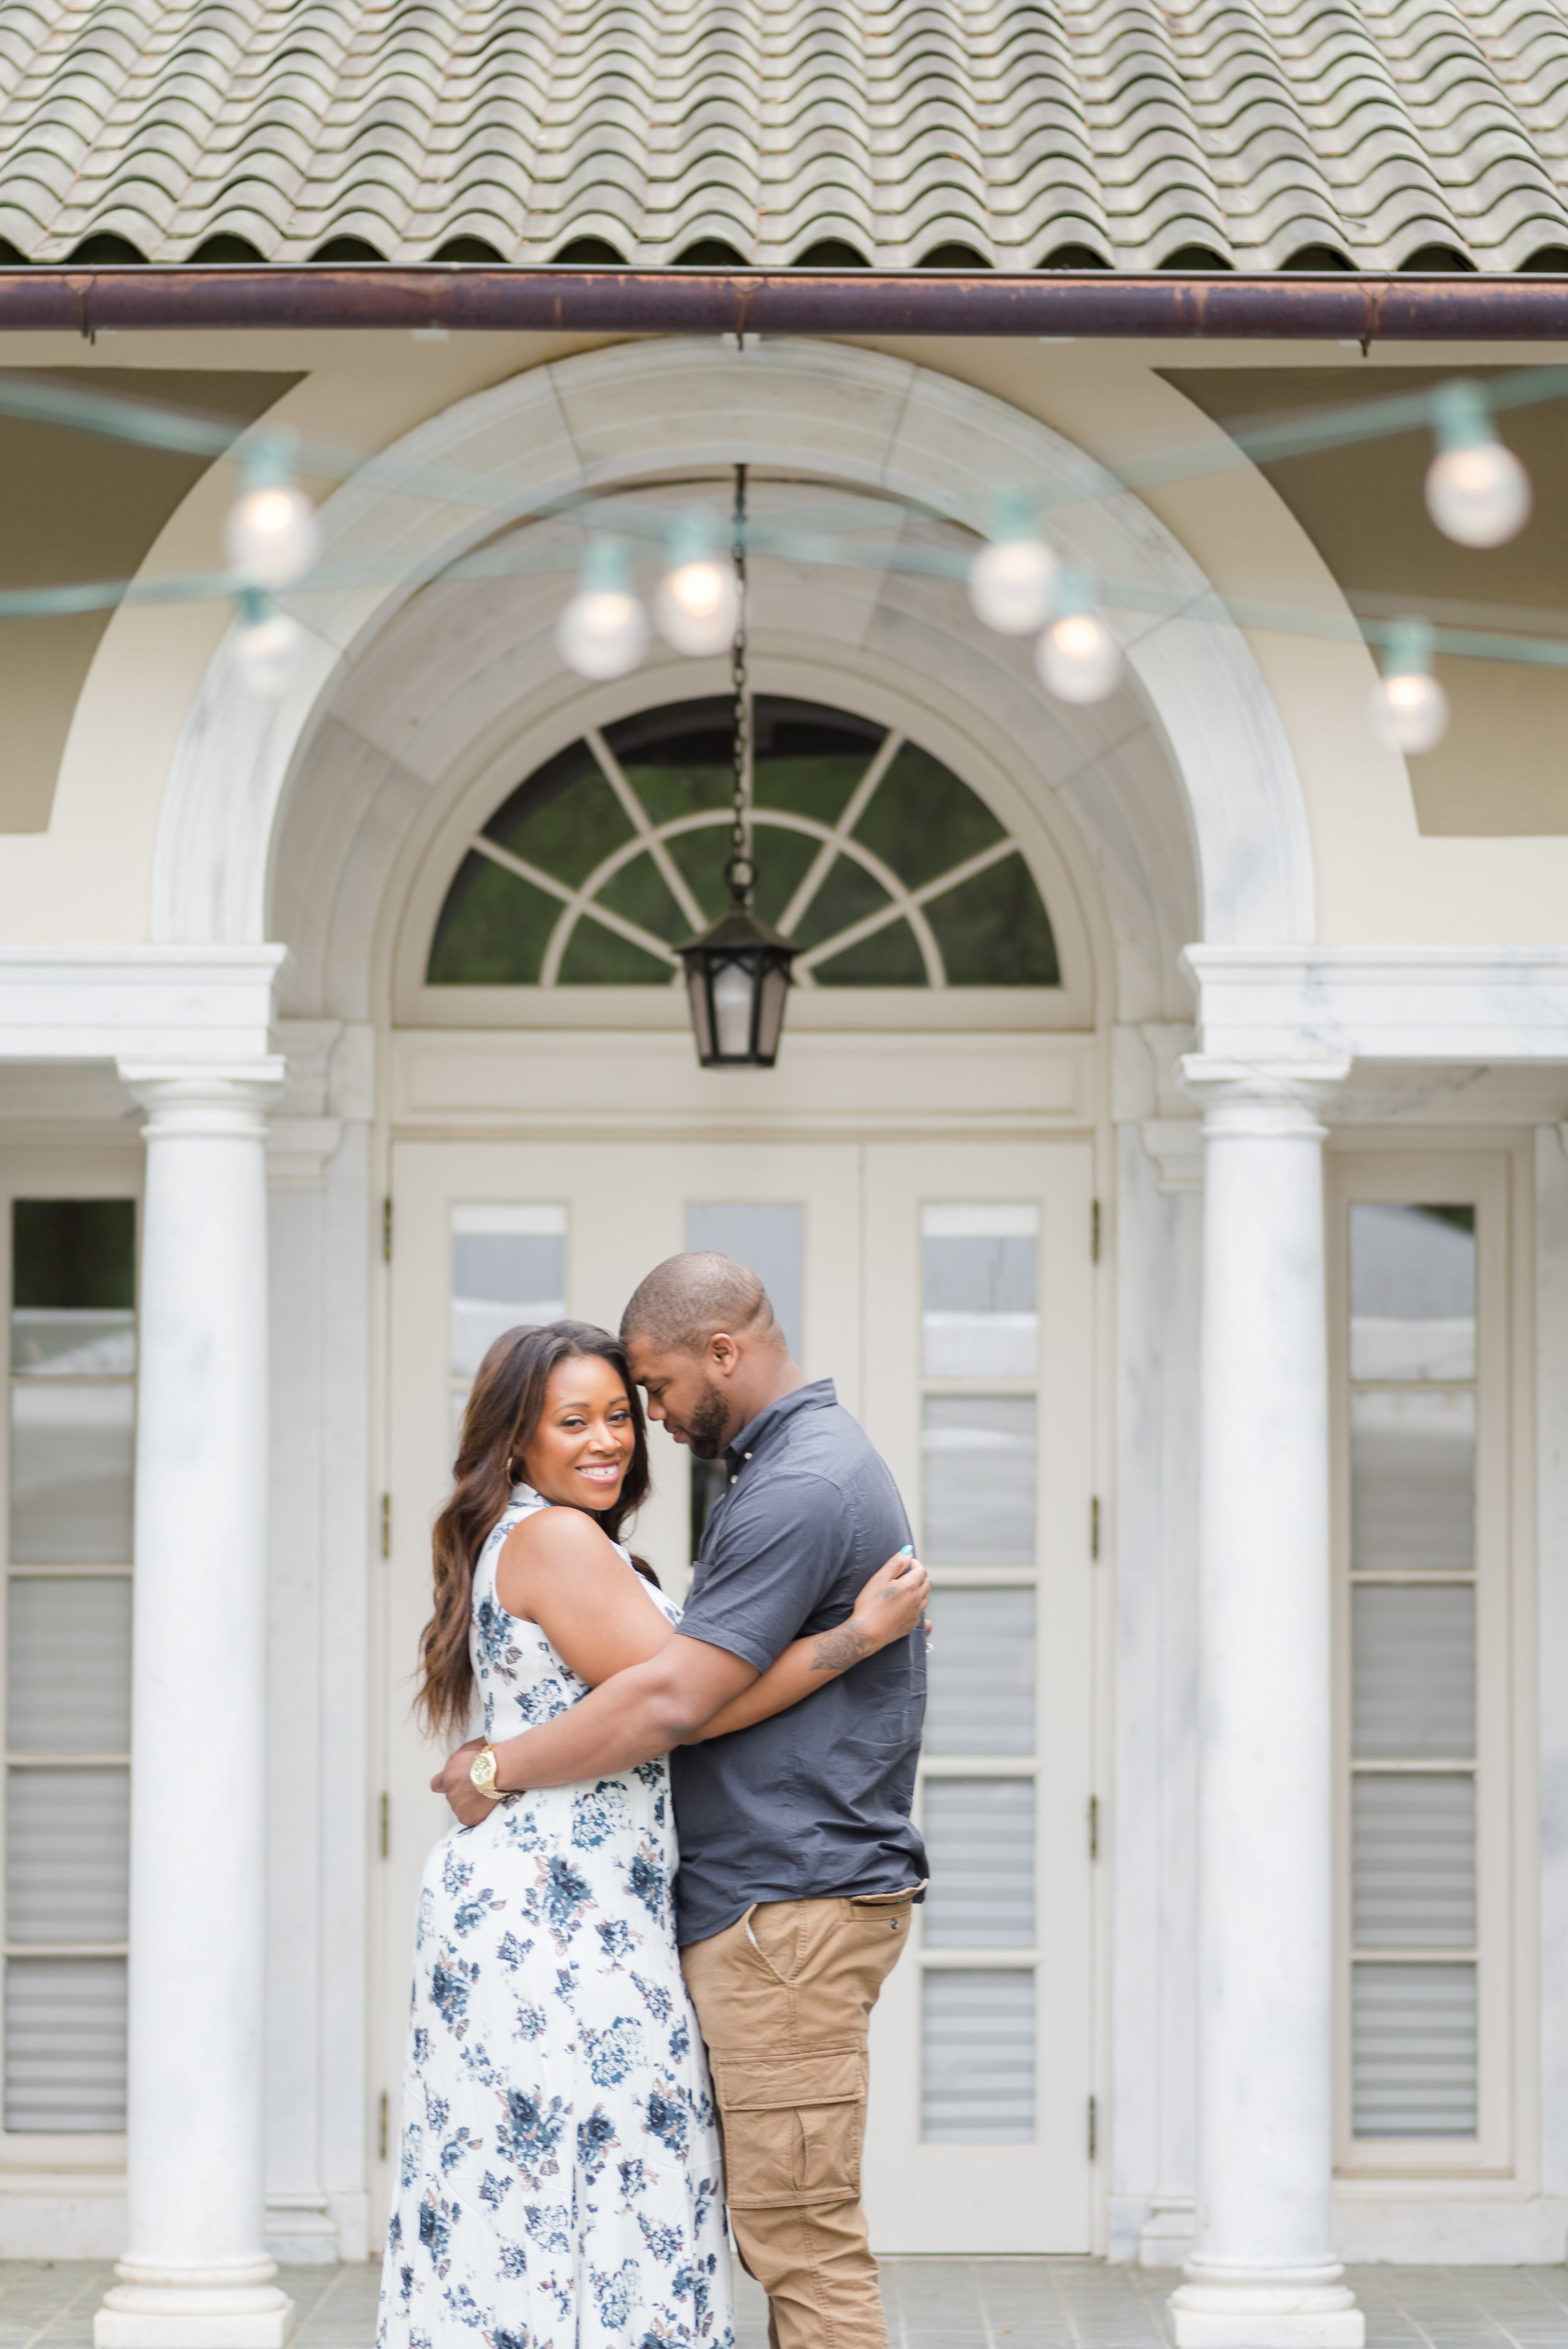 Cater Woolford Gardens Engagement Session 3.jpg